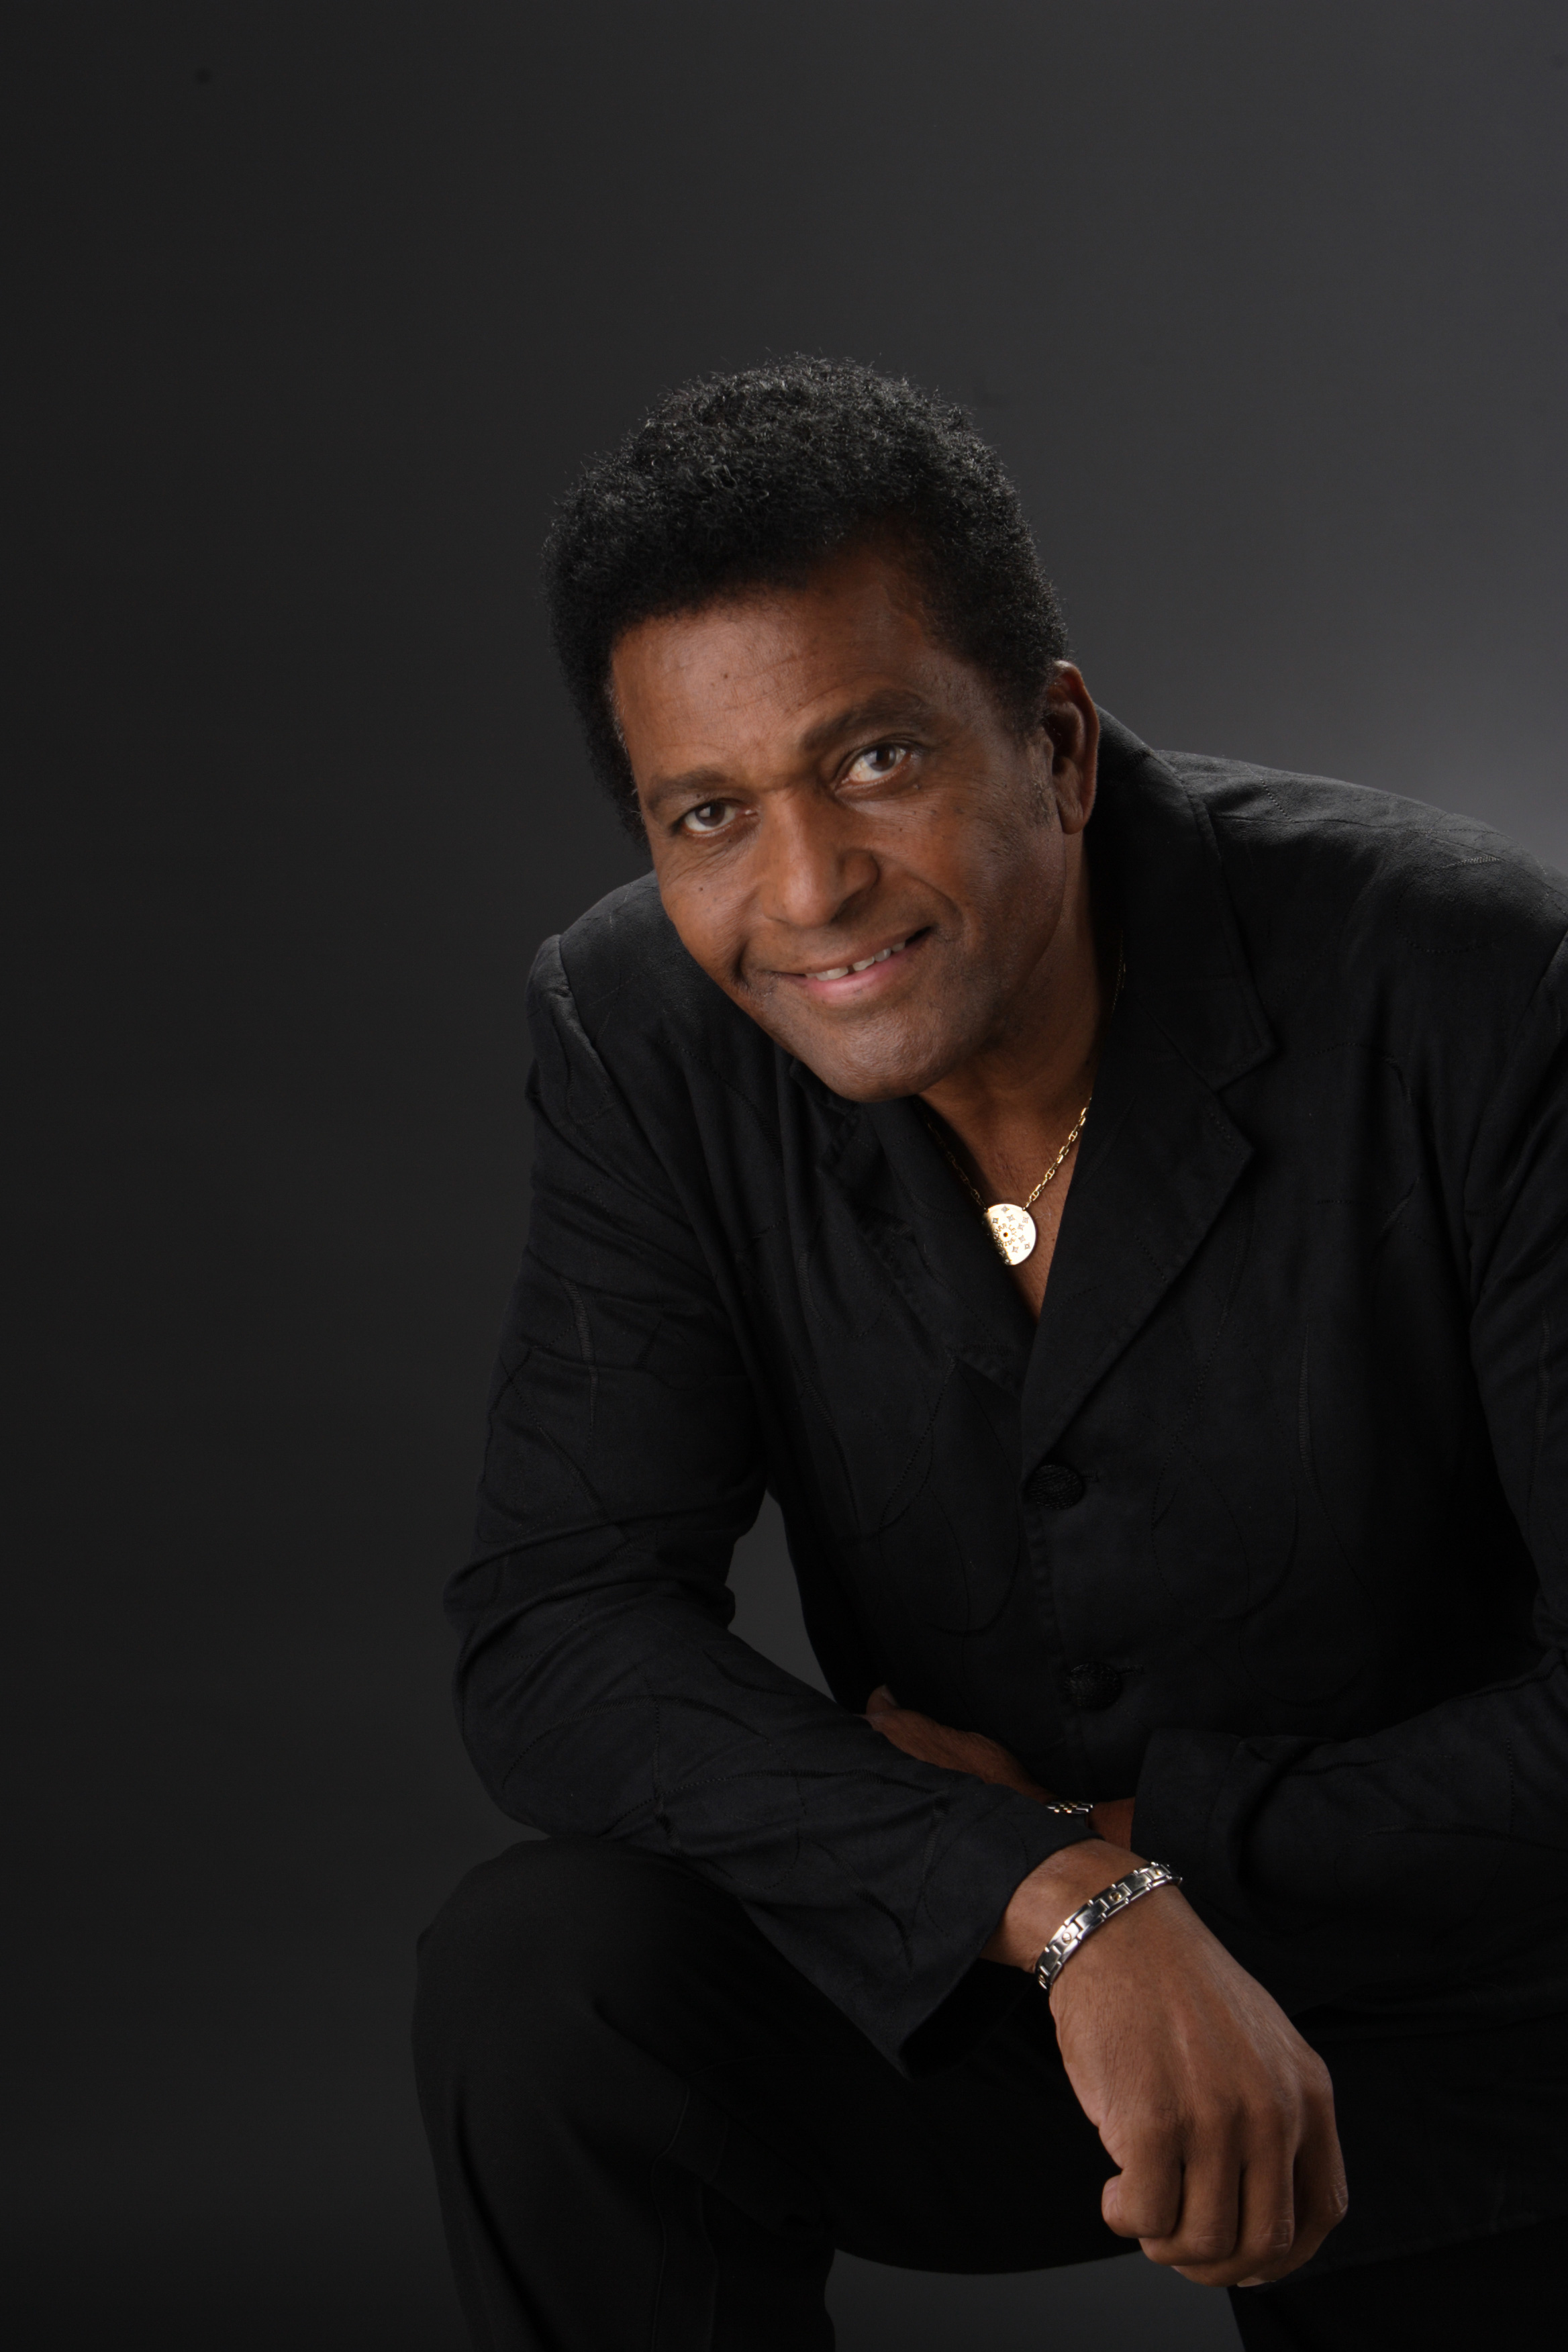 Charlie Pride Hits Stunning charlie pride tour april/may 2015 - bluesdoodles